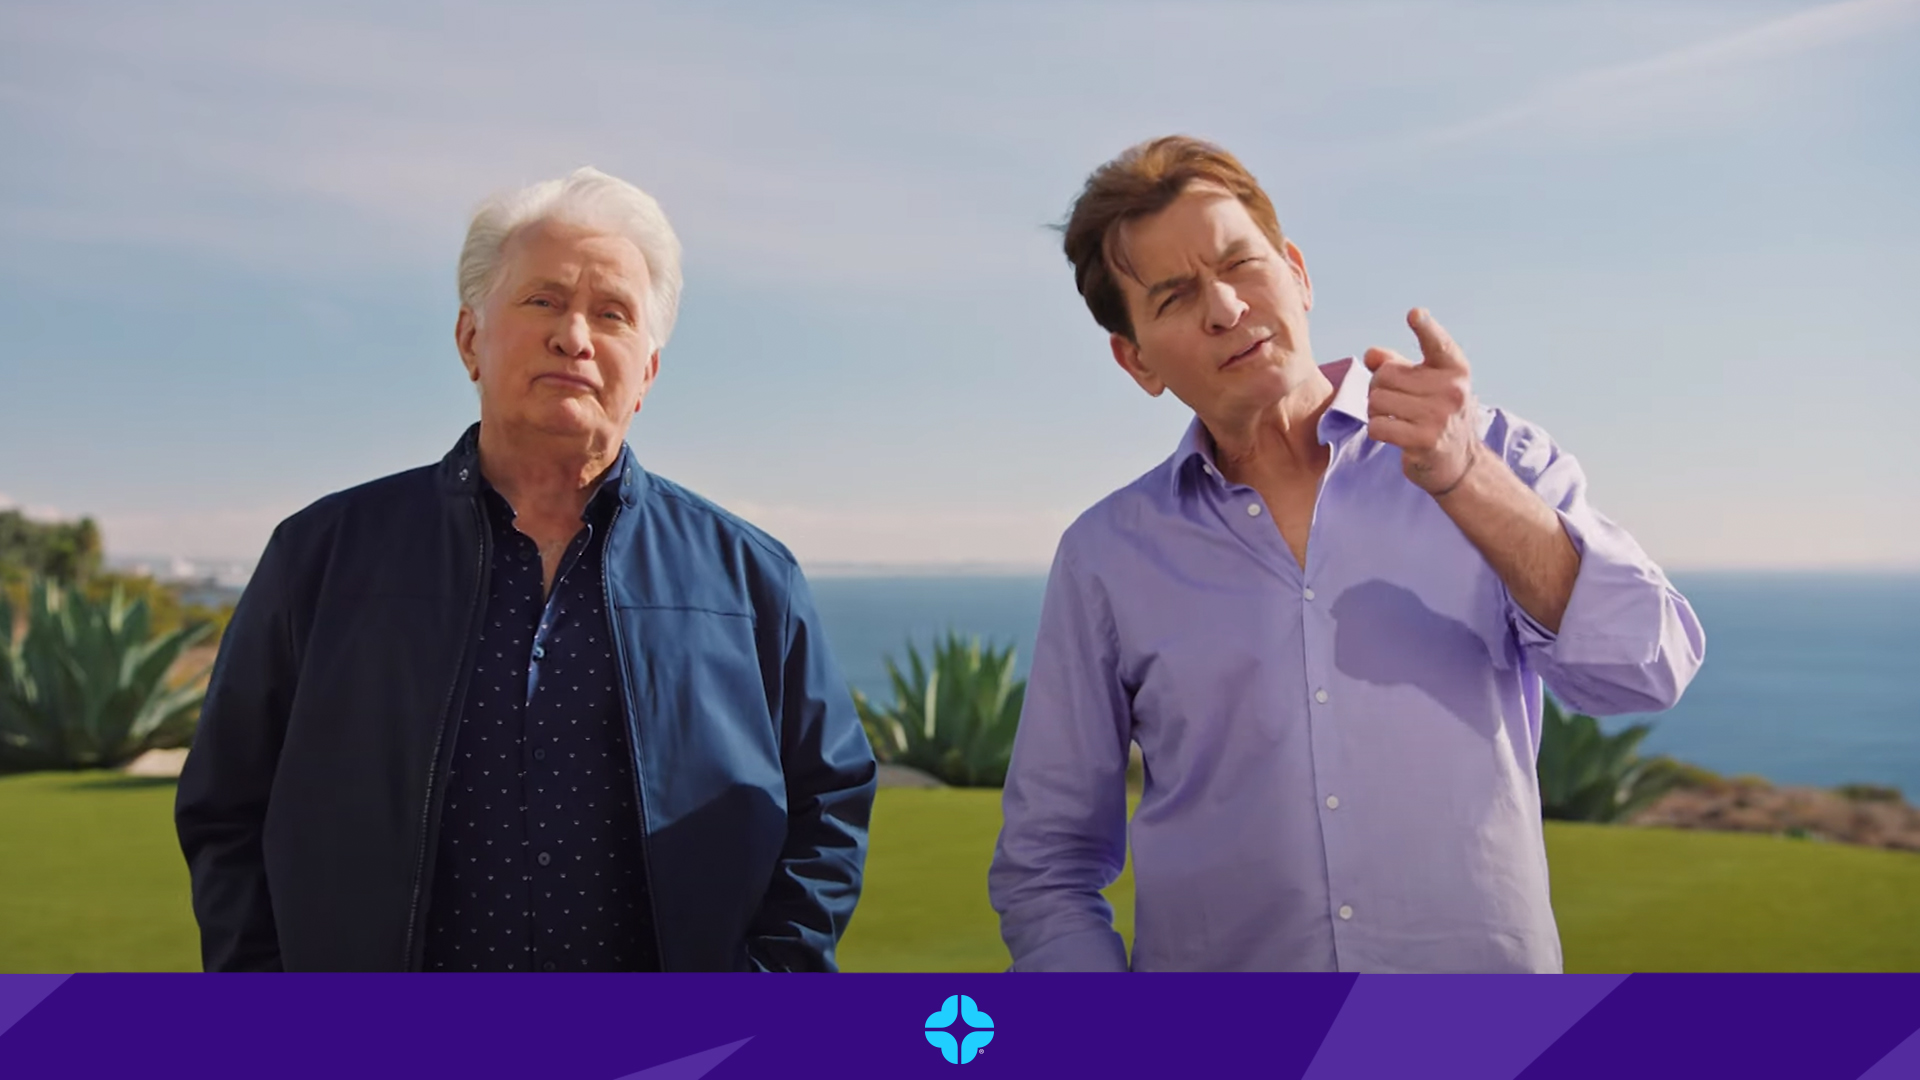 Martin Sheen and Charlie Sheen share Rx discount info in new SingleCare commercials